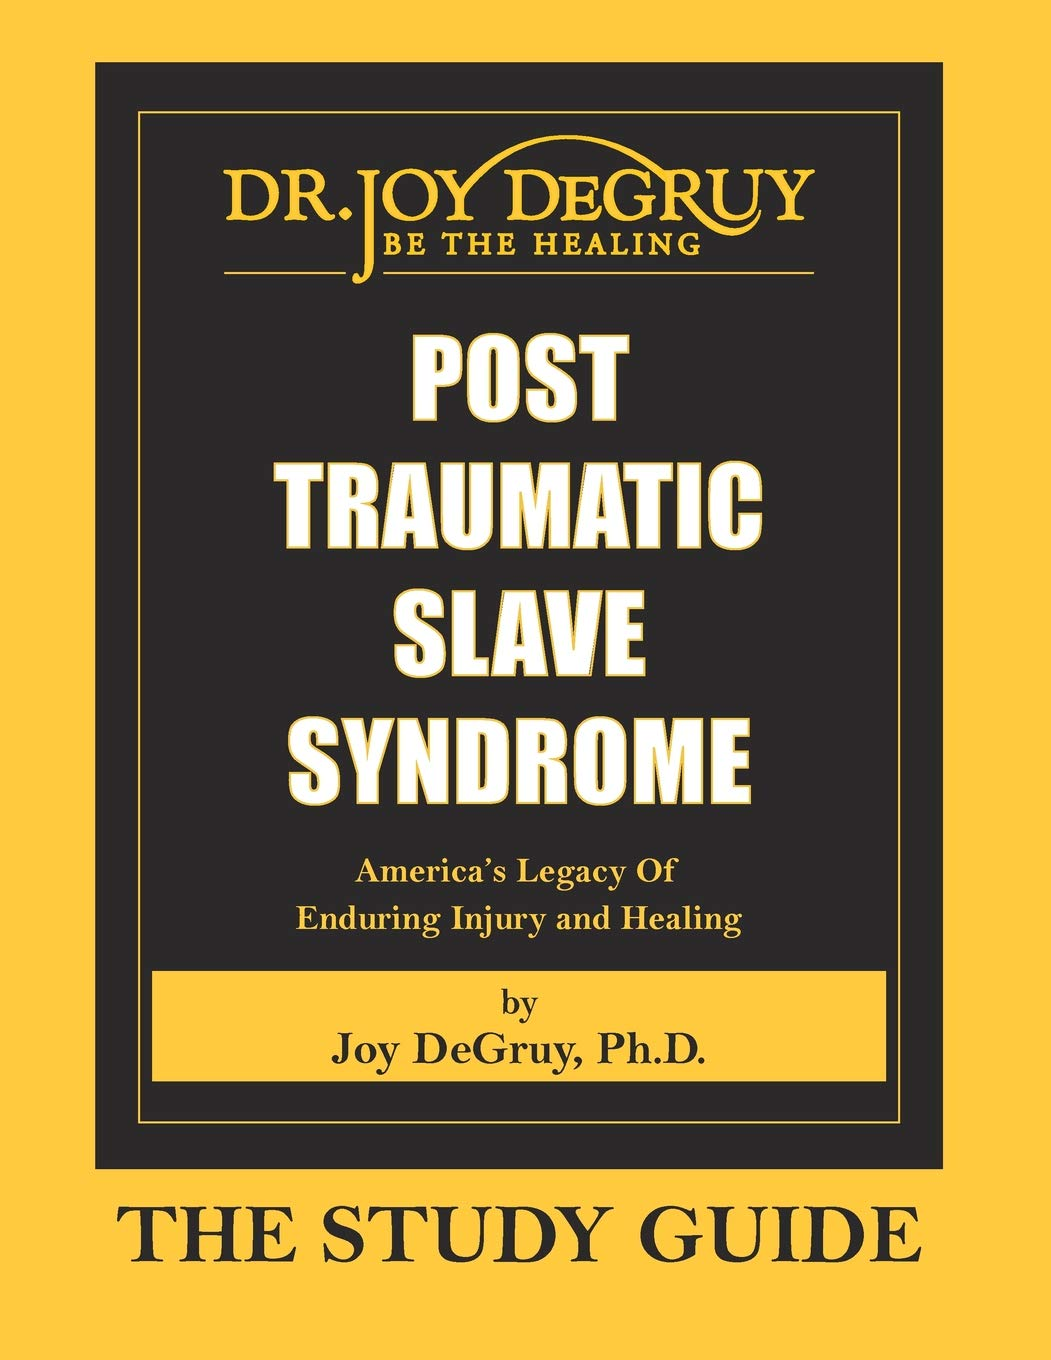 Post Traumatic Slave Syndrome: Study Guide Revised: Joy a Degruy:  9781615391080: Amazon.com: Books